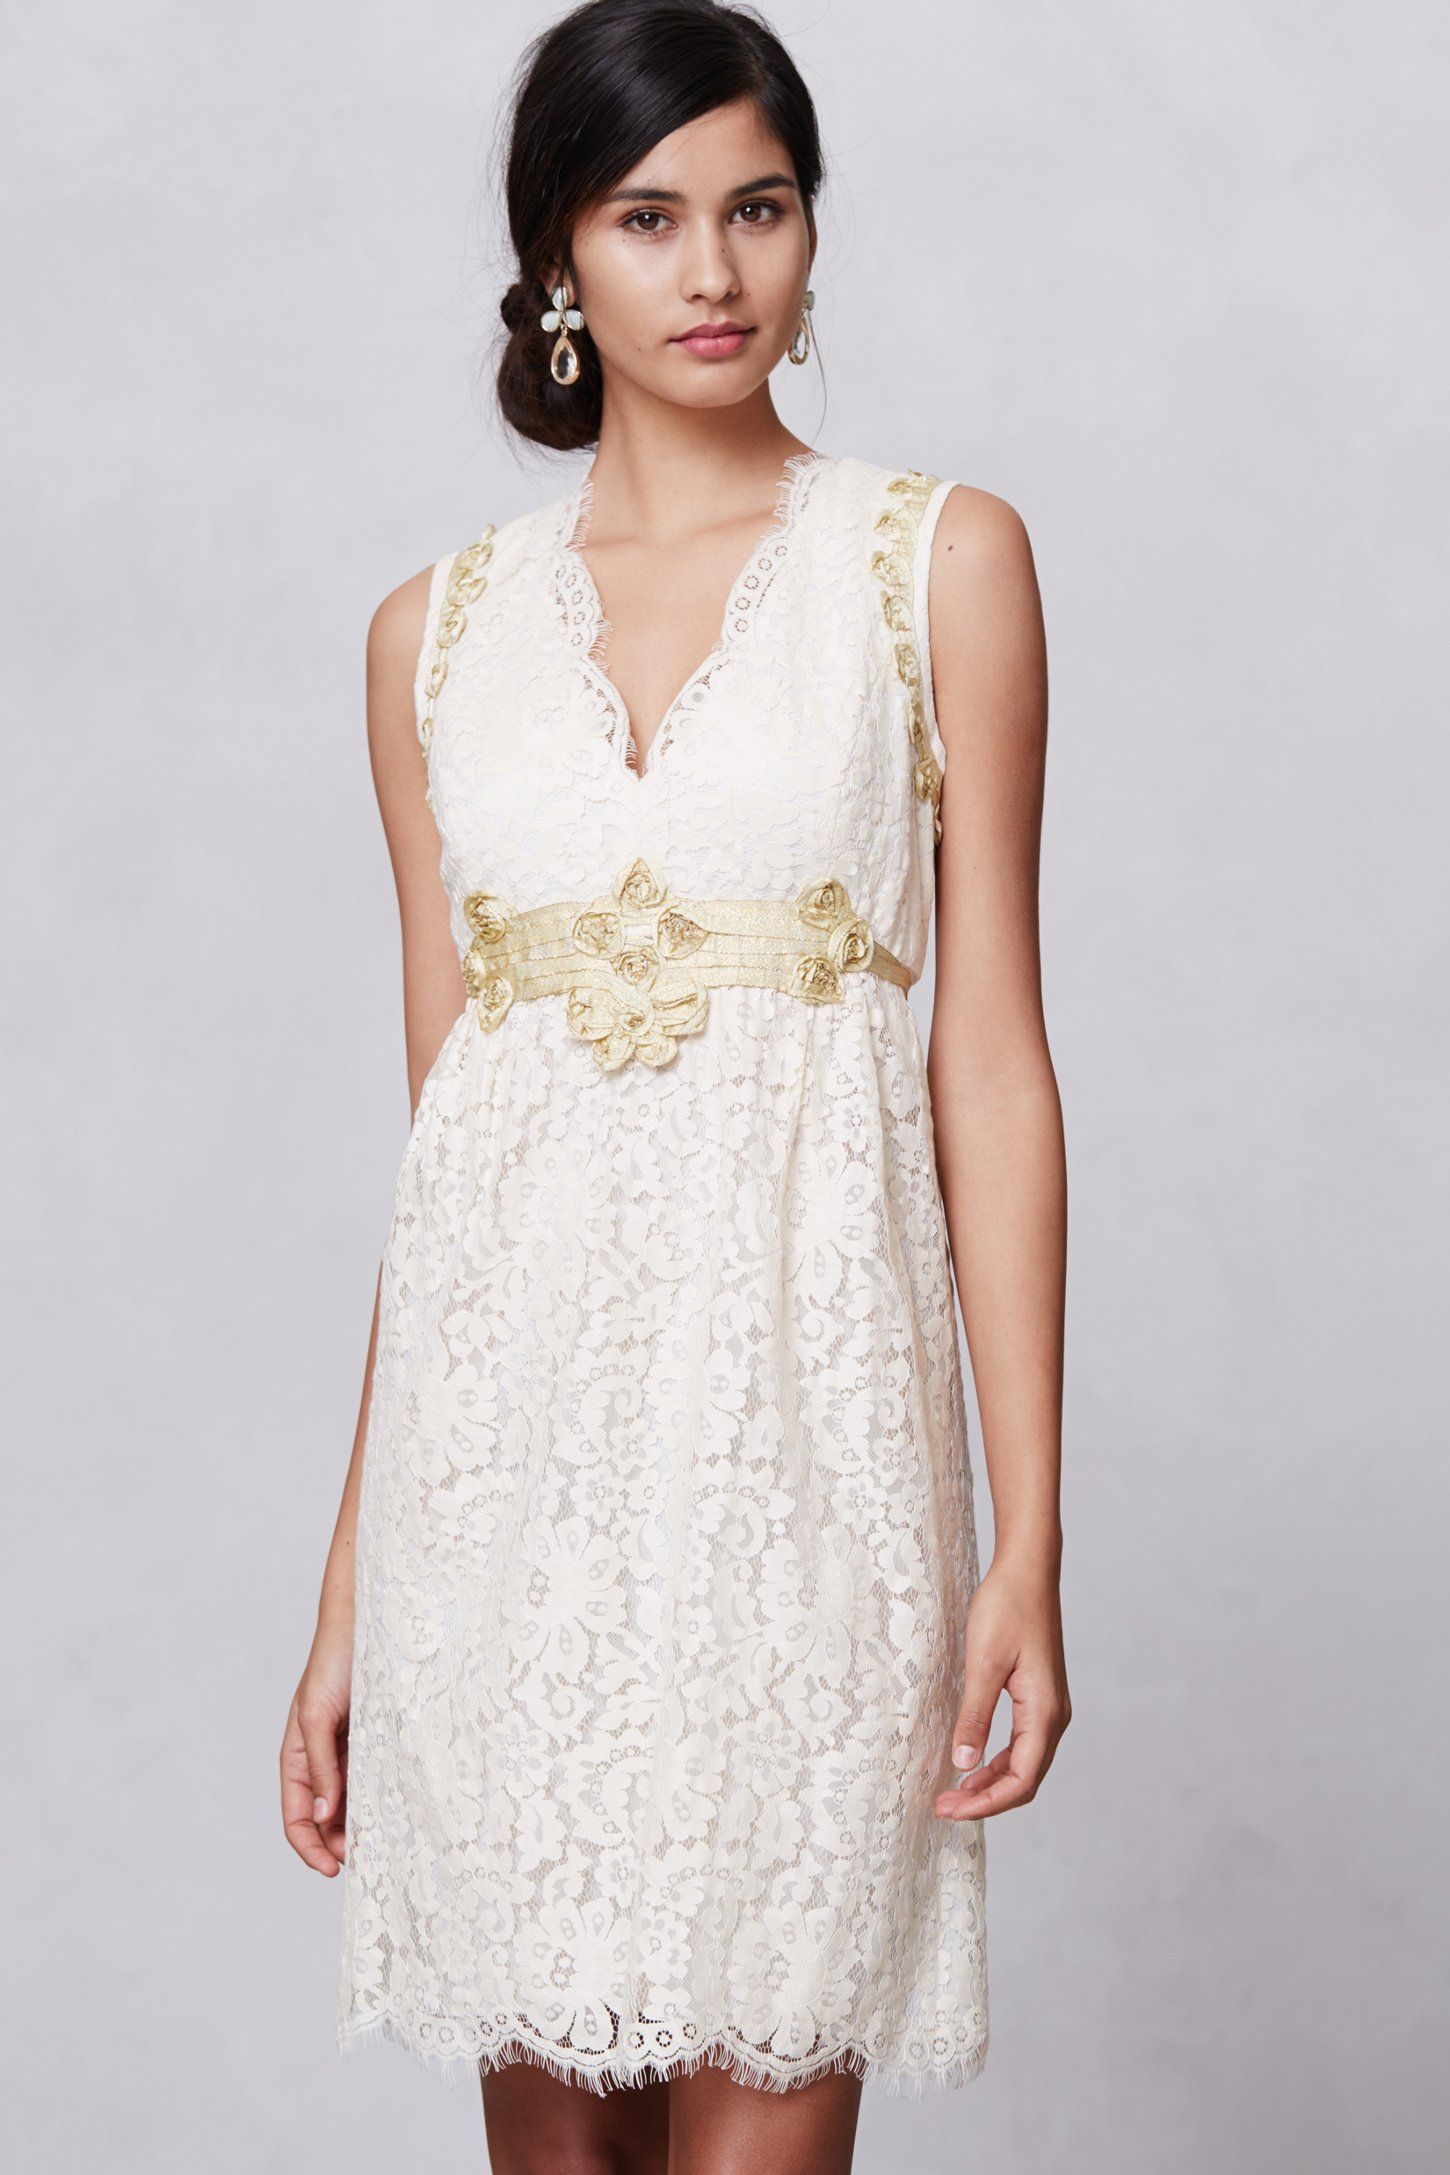 Dress for wedding engagement party  Lonoke Lace Dress by Anna Sui  Anthrofave  Fashion  Pinterest